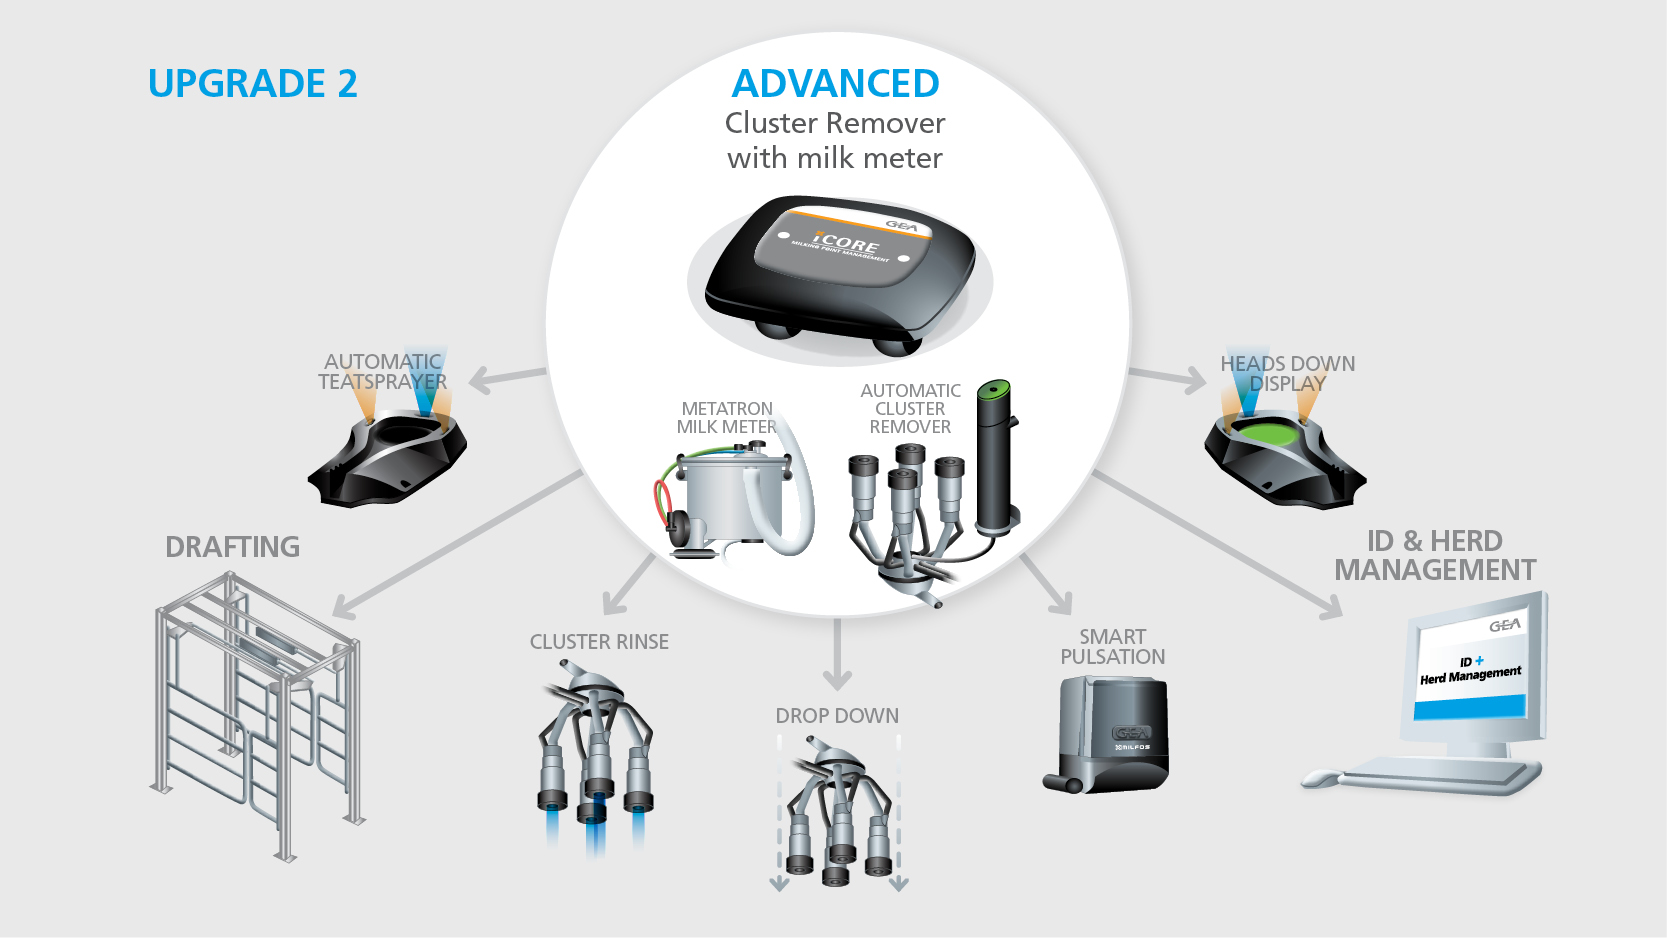 iCore milking point controller advanced metatron